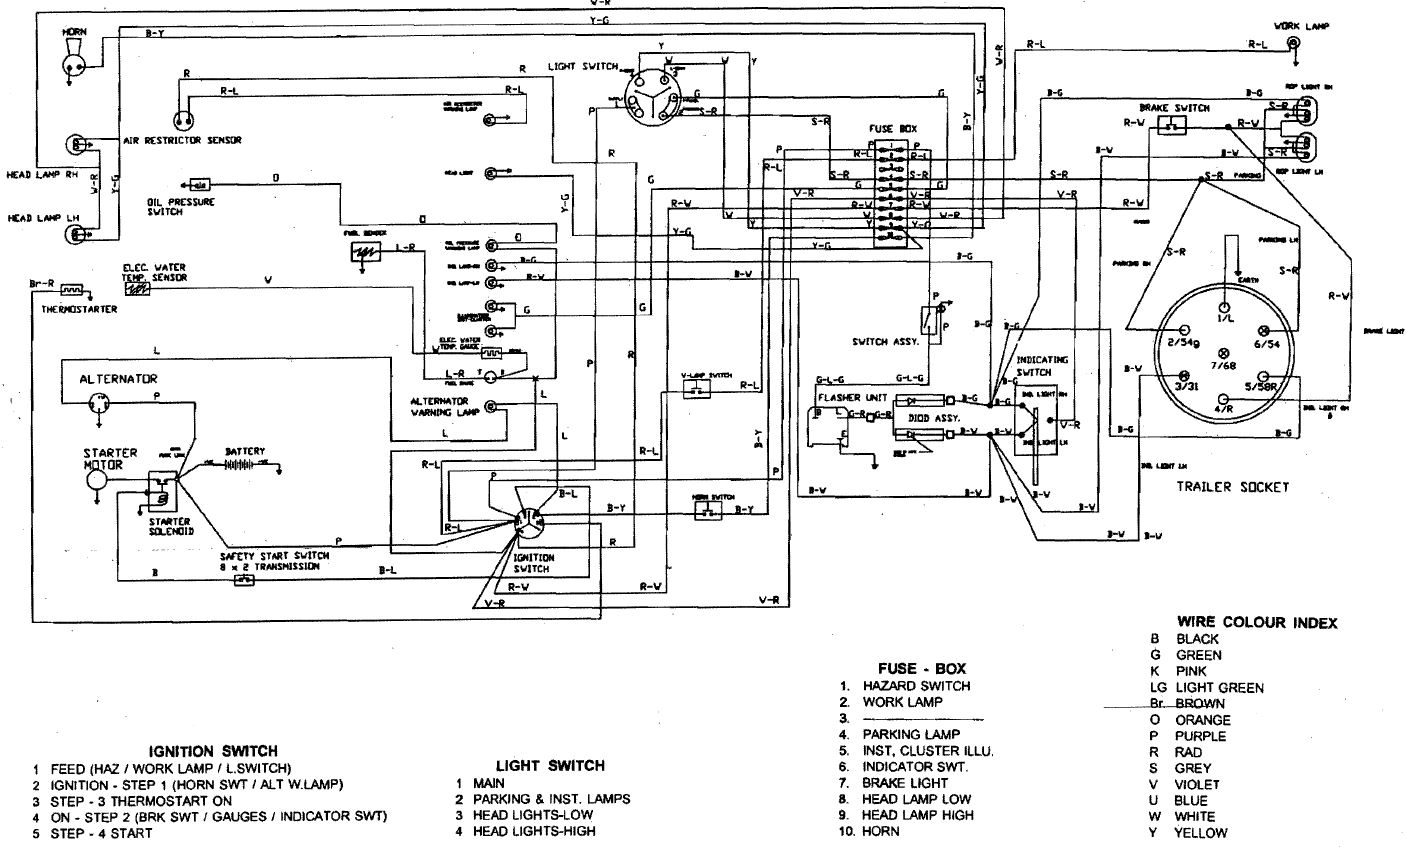 20158463319_b82d524c3d_o ignition switch wiring diagram ignition wiring diagram at mifinder.co